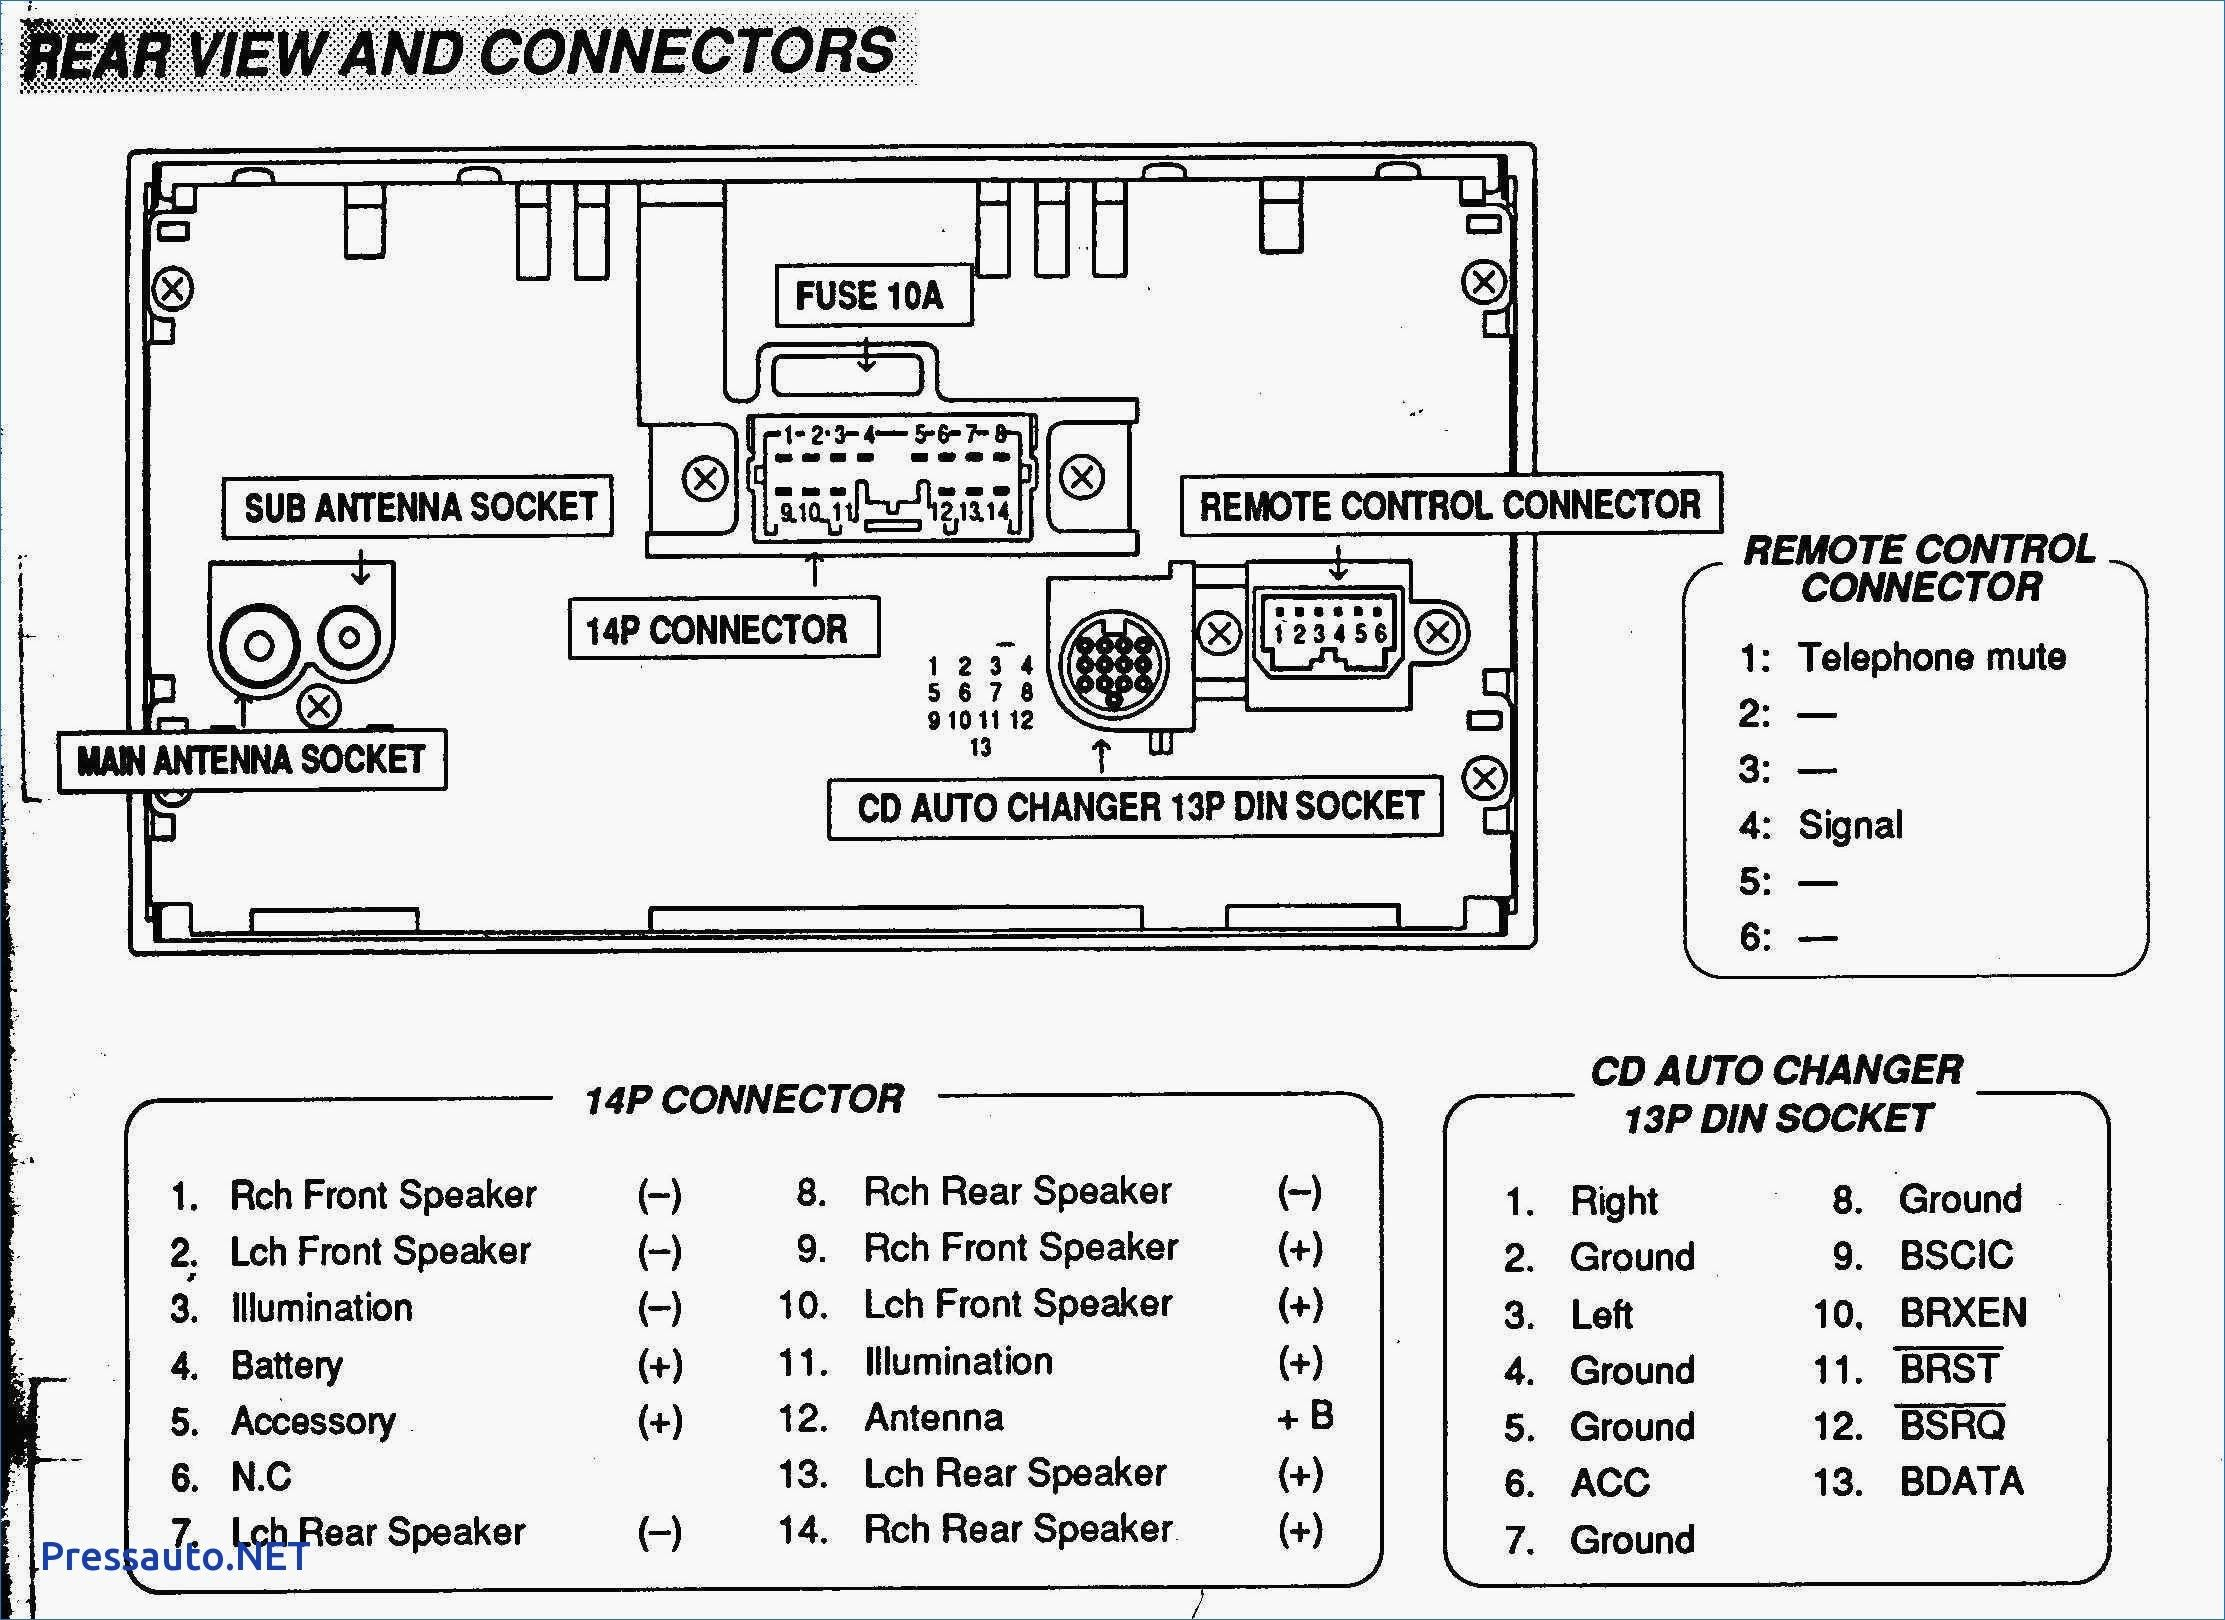 Unique Automotive Wiring Diagram Color Codes Diagram Wiringdiagram Diagramming Diagramm Visuals Visualisation Mitsubishi Cars Car Stereo Subwoofer Wiring